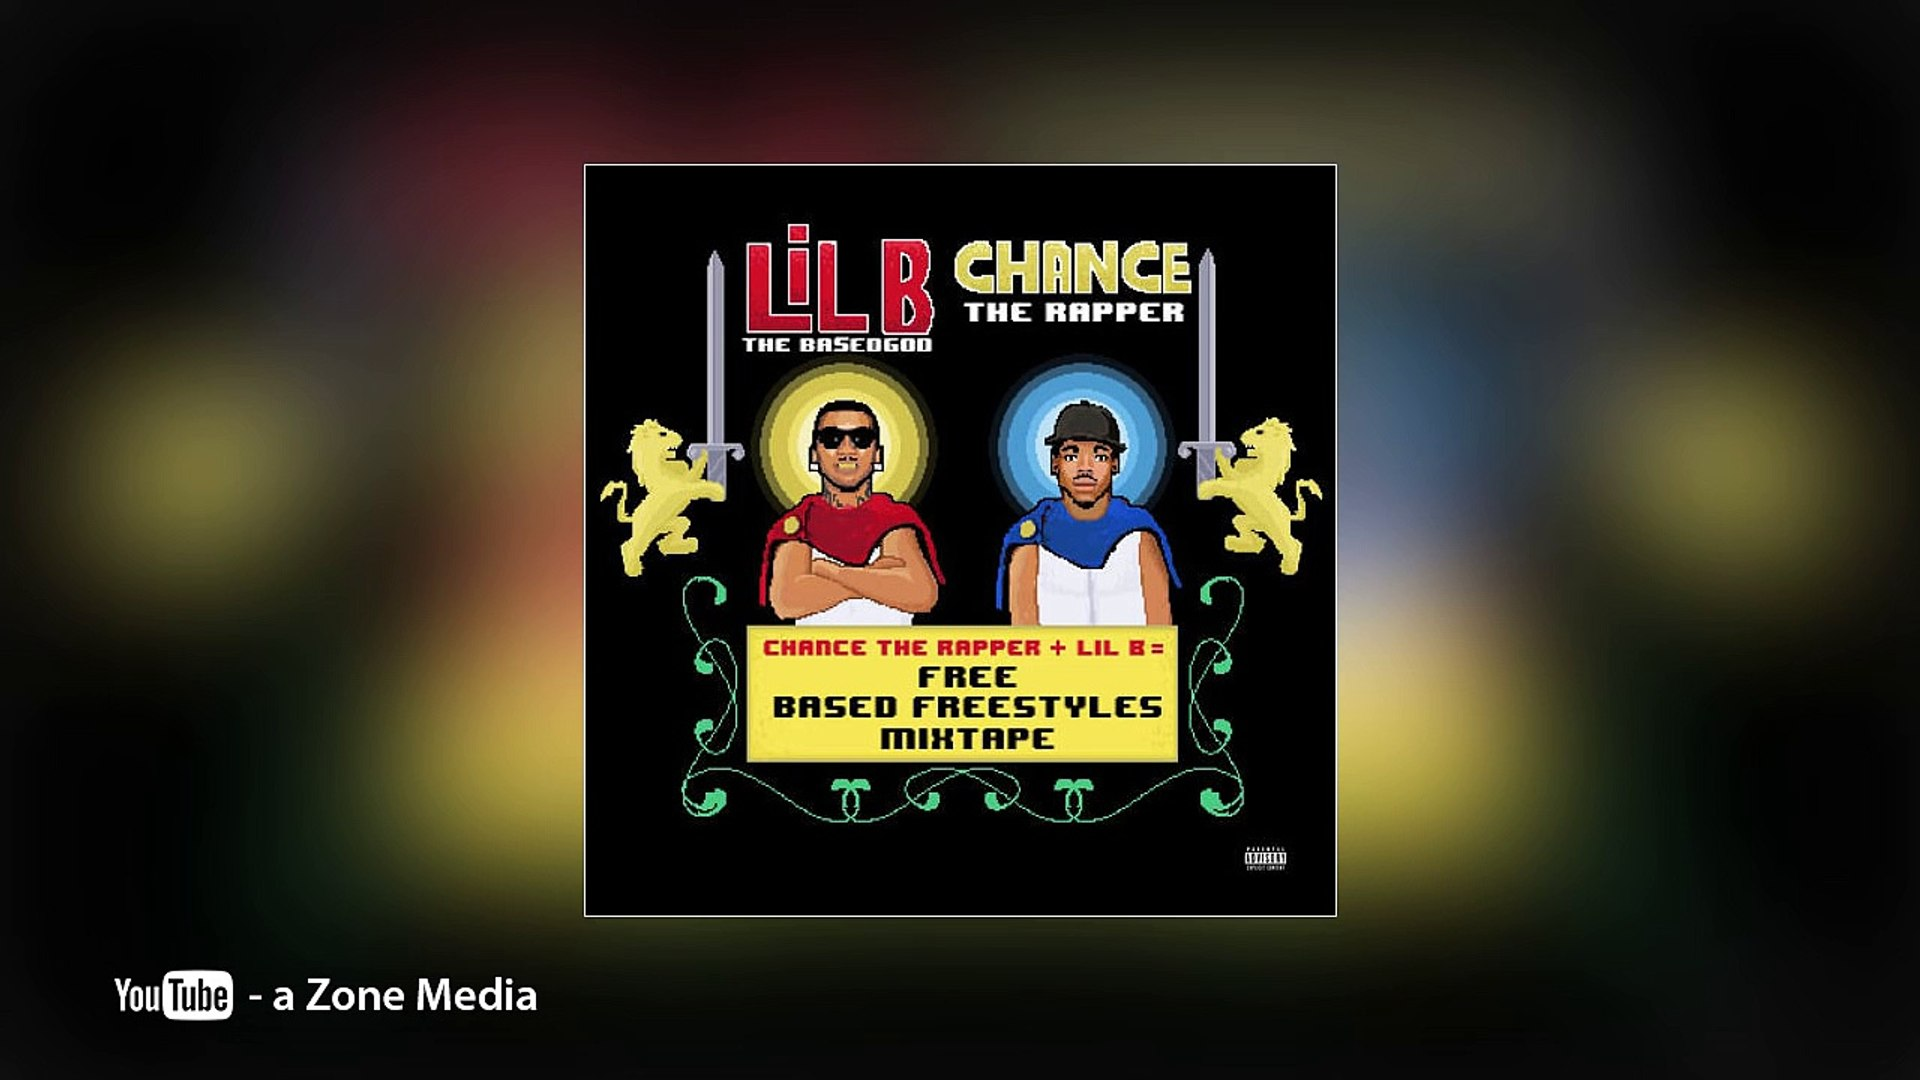 Lil B & Chance The Rapper - Do My Dance (Free Based Freestyles Mixtape)